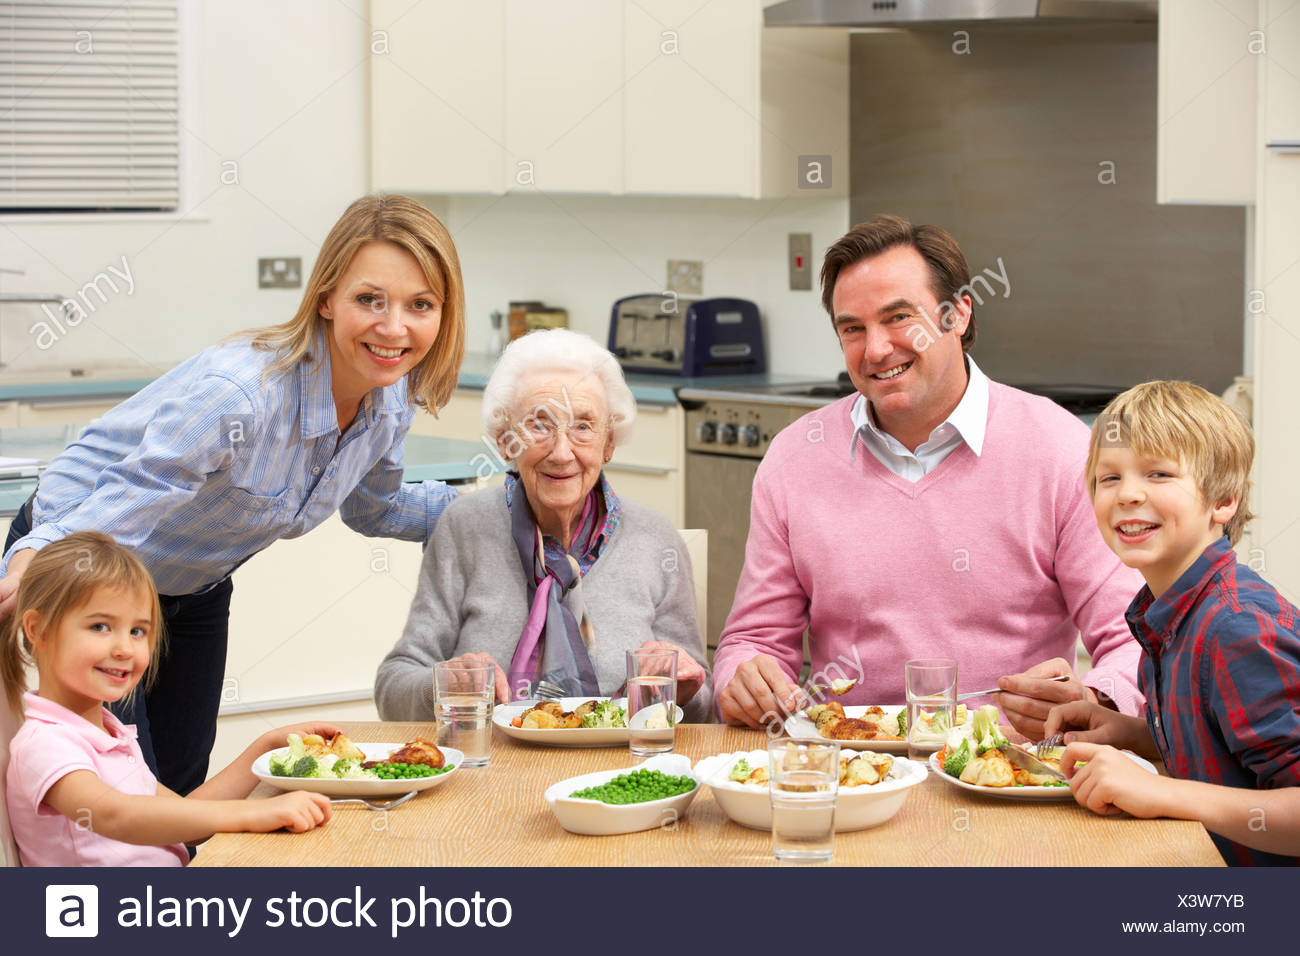 Multi-generation family sharing meal together - Stock Image